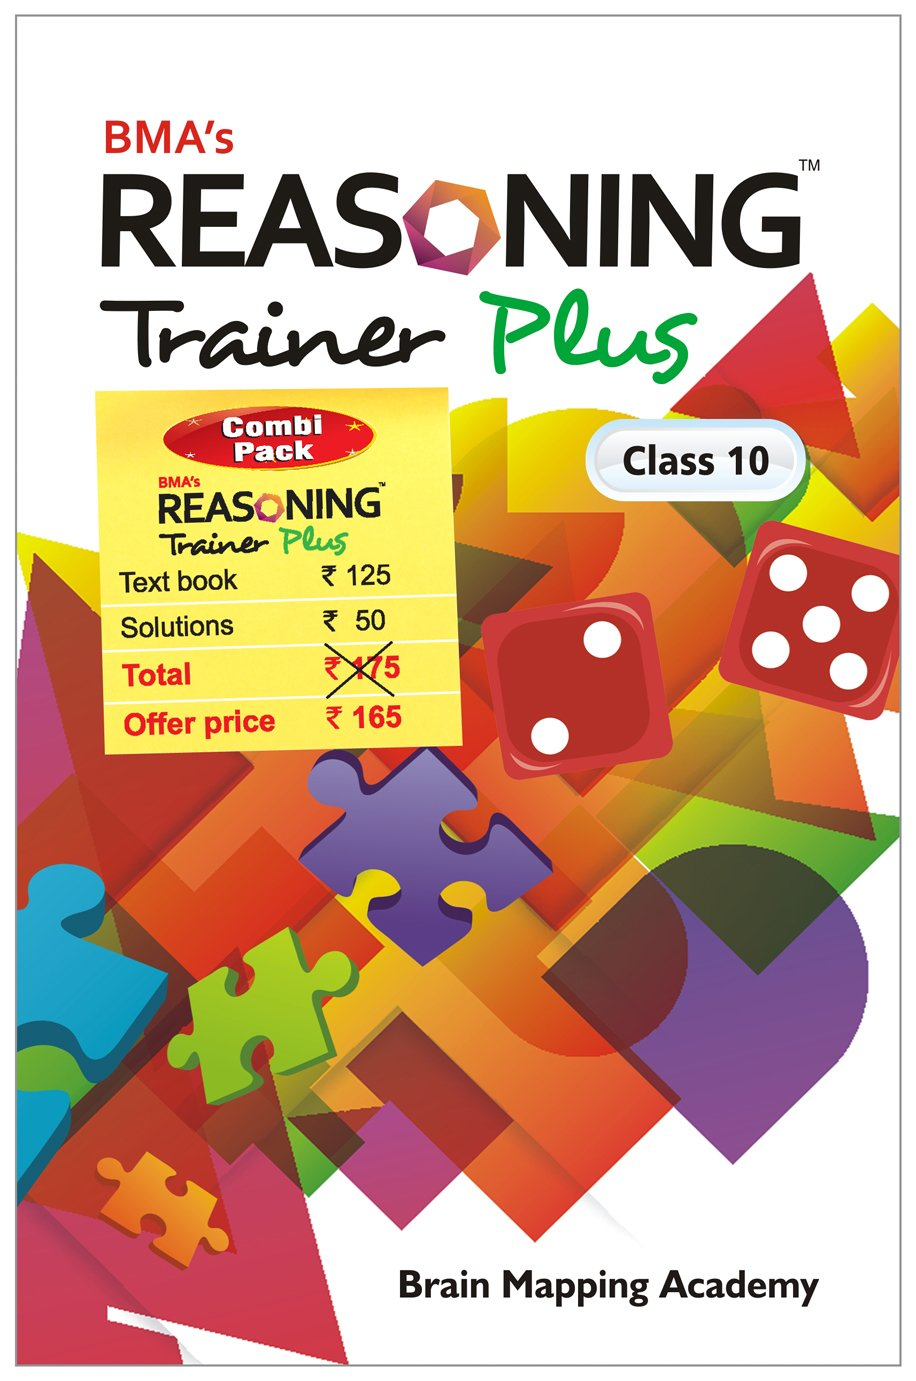 buy reasoning trainer plus for class combi text book sol buy reasoning trainer plus for class 10 combi text book sol book book online at low prices in reasoning trainer plus for class 10 combi